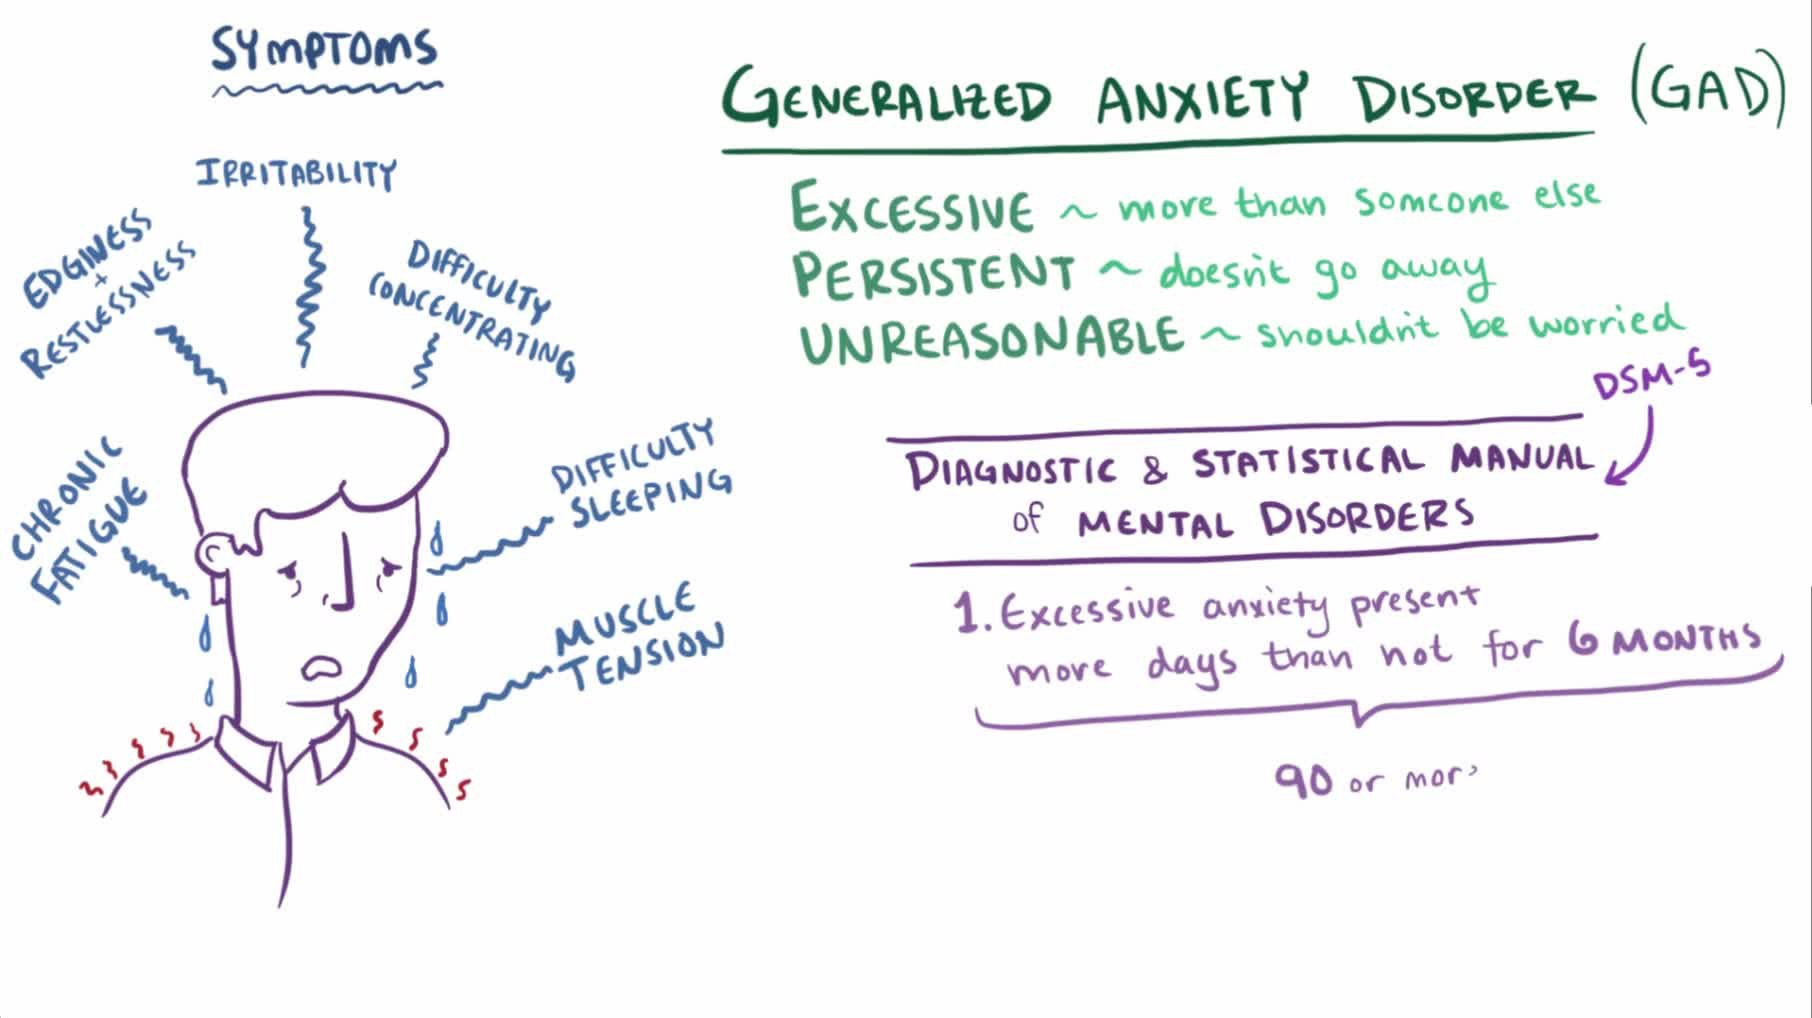 Severe Social Anxiety Disorder